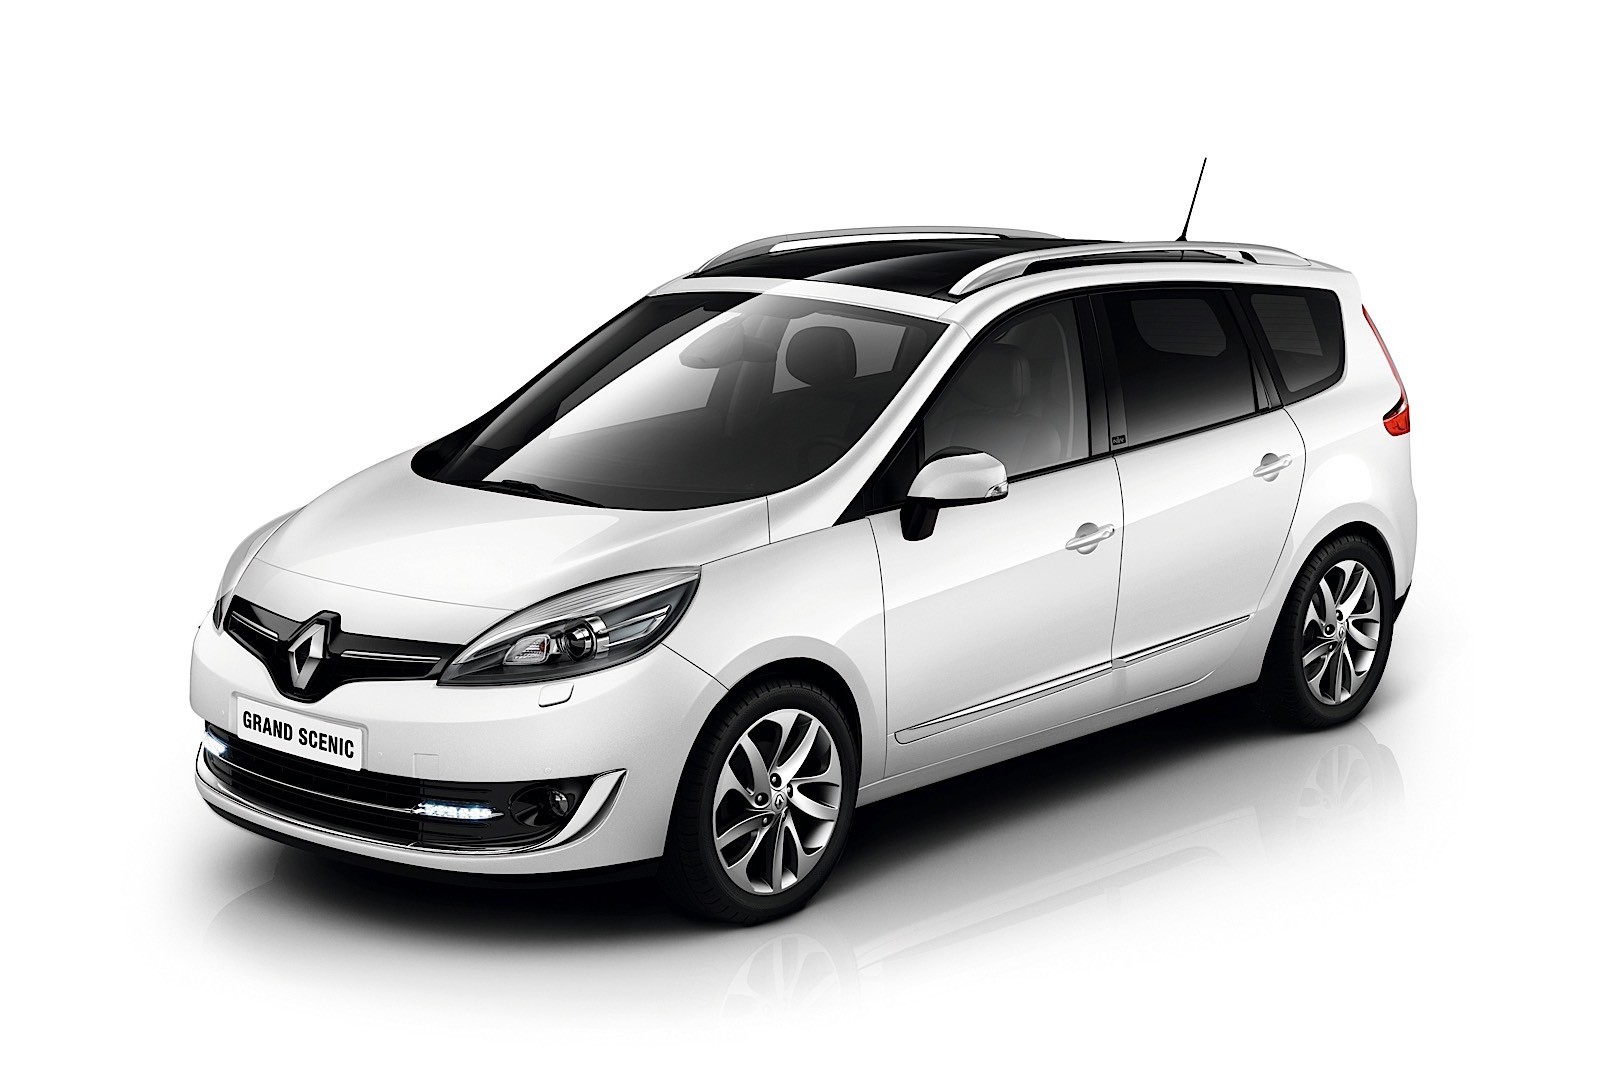 renault grand scenic specs photos 2013 2014 2015 2016 2017 2018 autoevolution. Black Bedroom Furniture Sets. Home Design Ideas